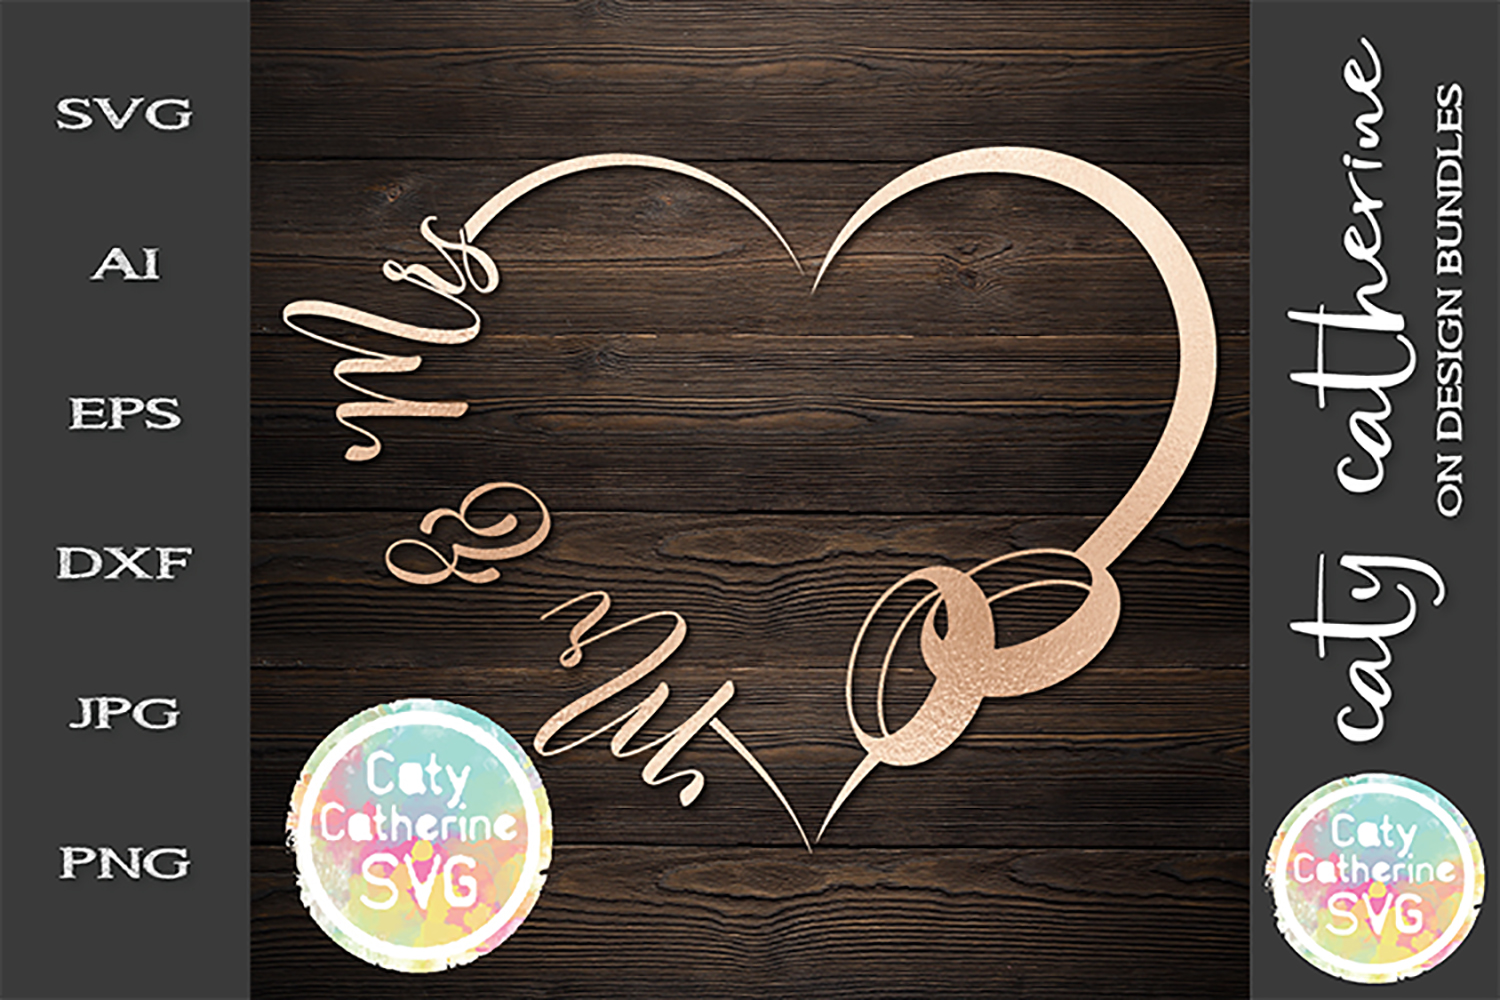 Wedding Love Heart Frame With Rings Bundle SVG Cut File example image 2